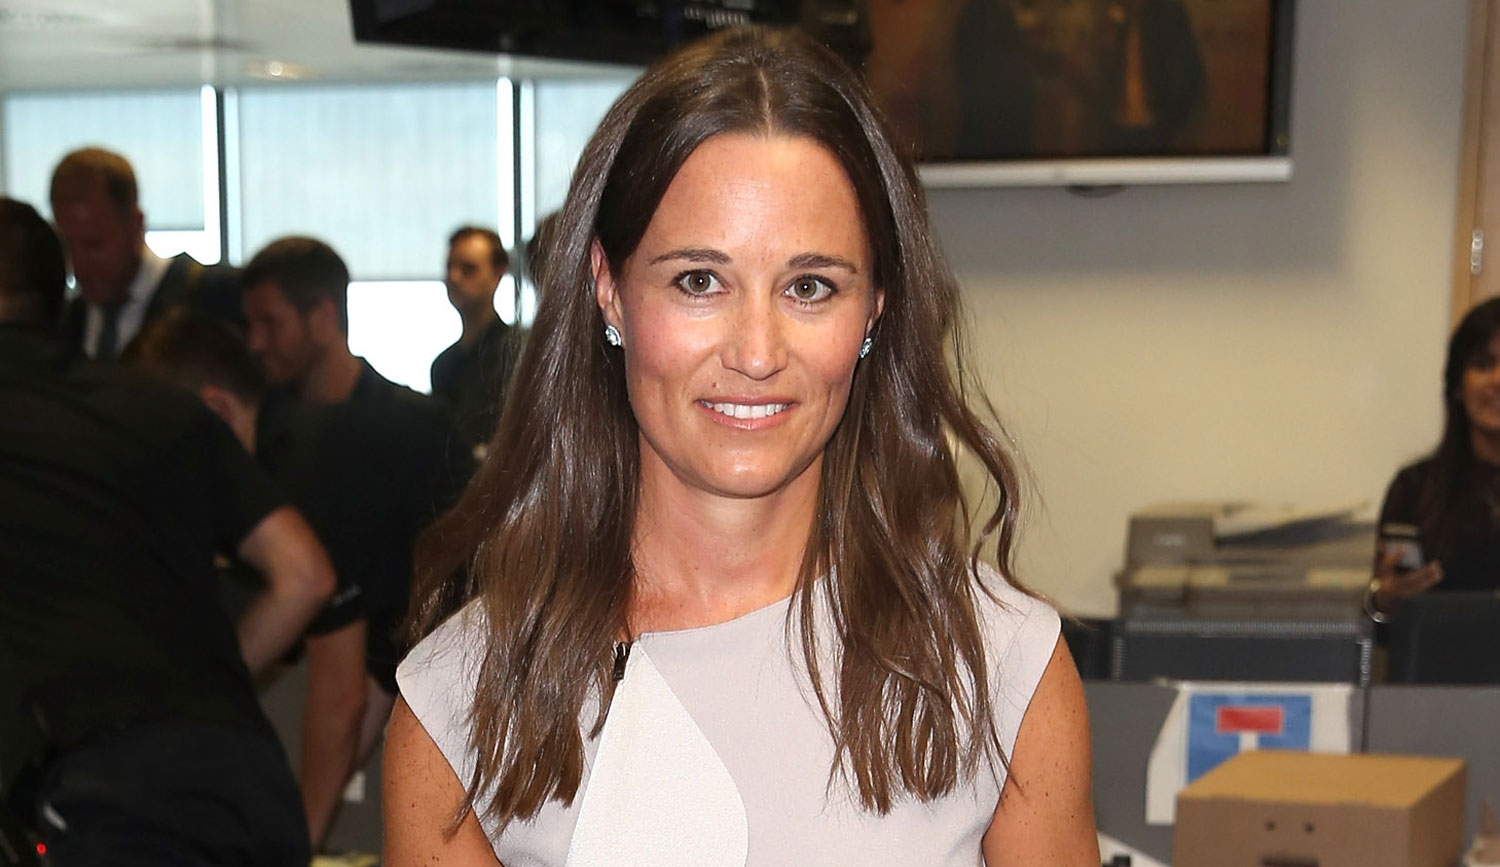 is pippa middleton dating someone